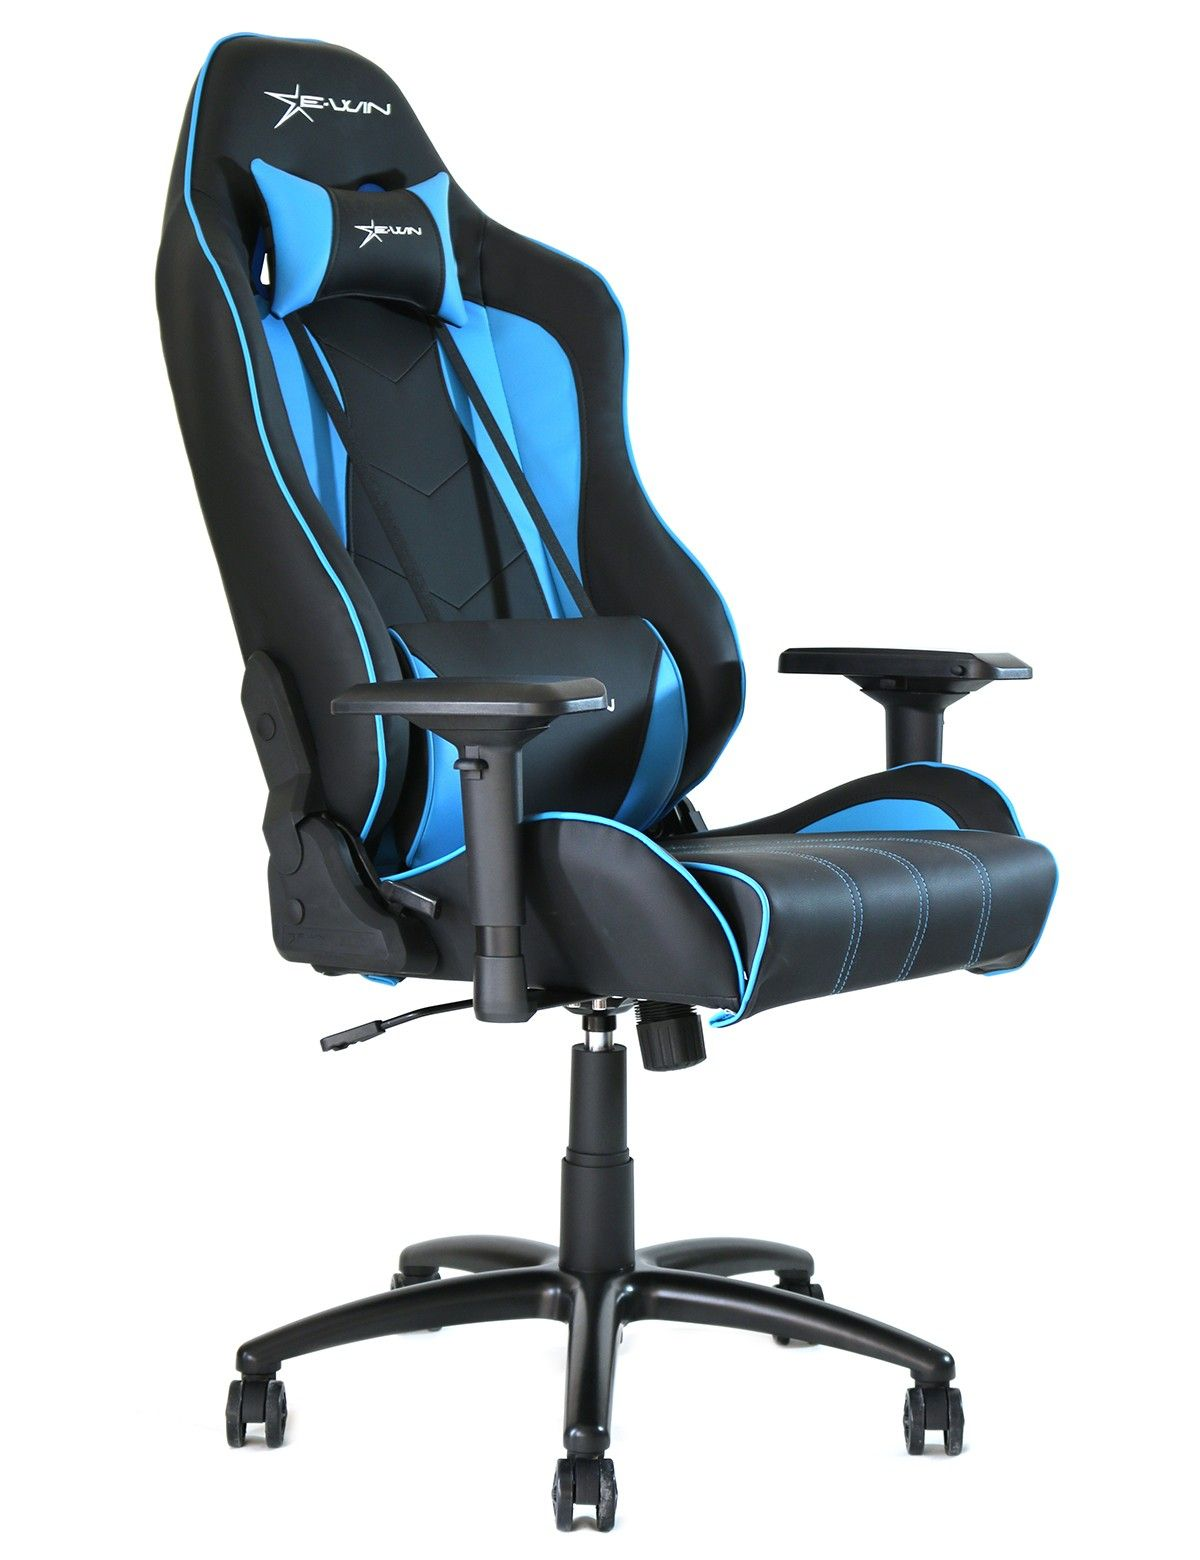 Top 10 Real Leather Gaming Chair For Sports, Office And